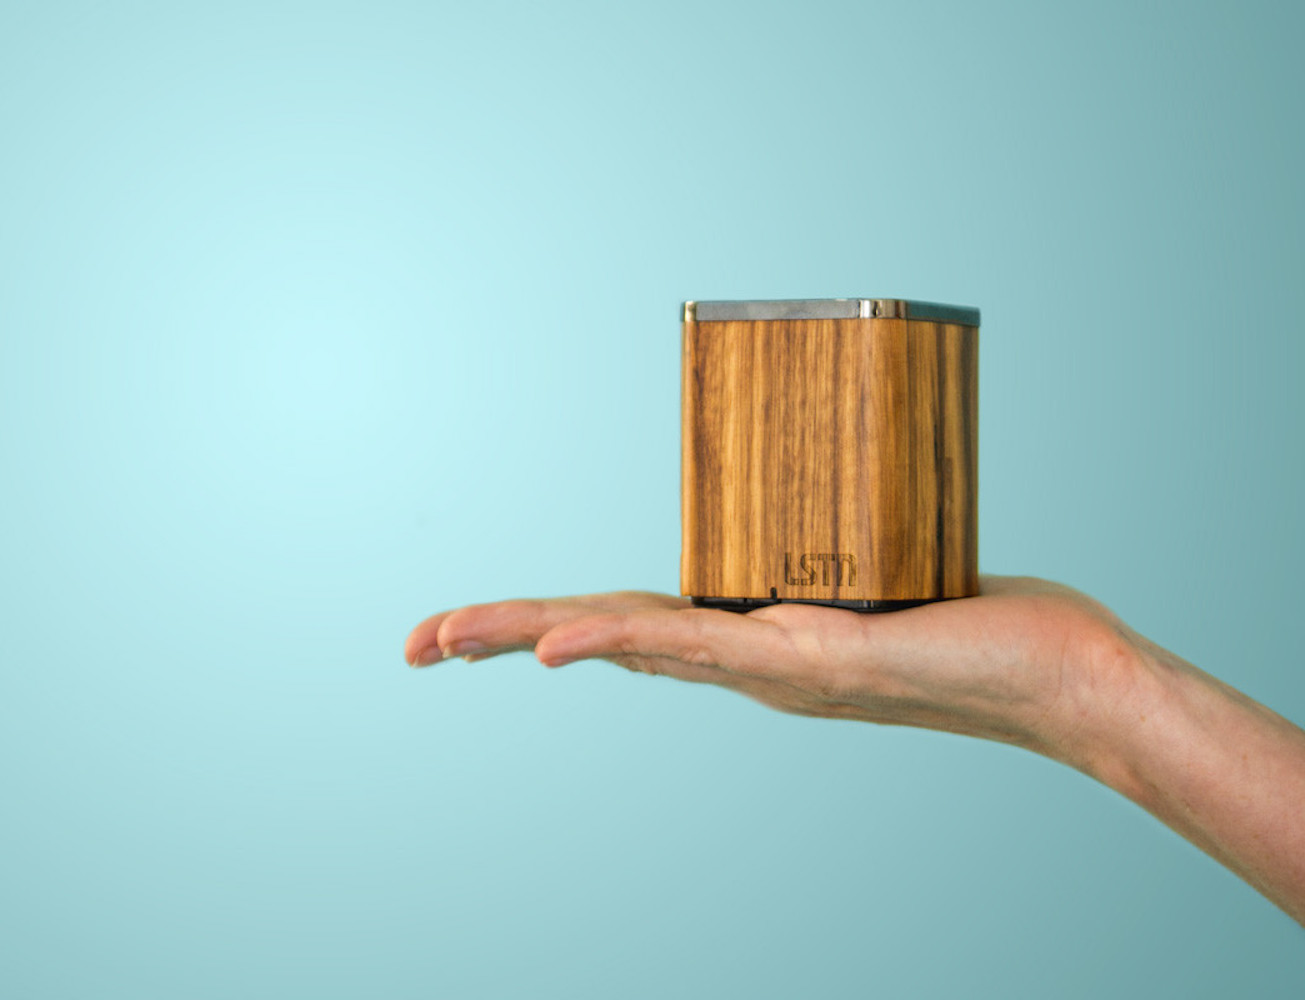 lstn-satellite-portable-wood-speaker-03